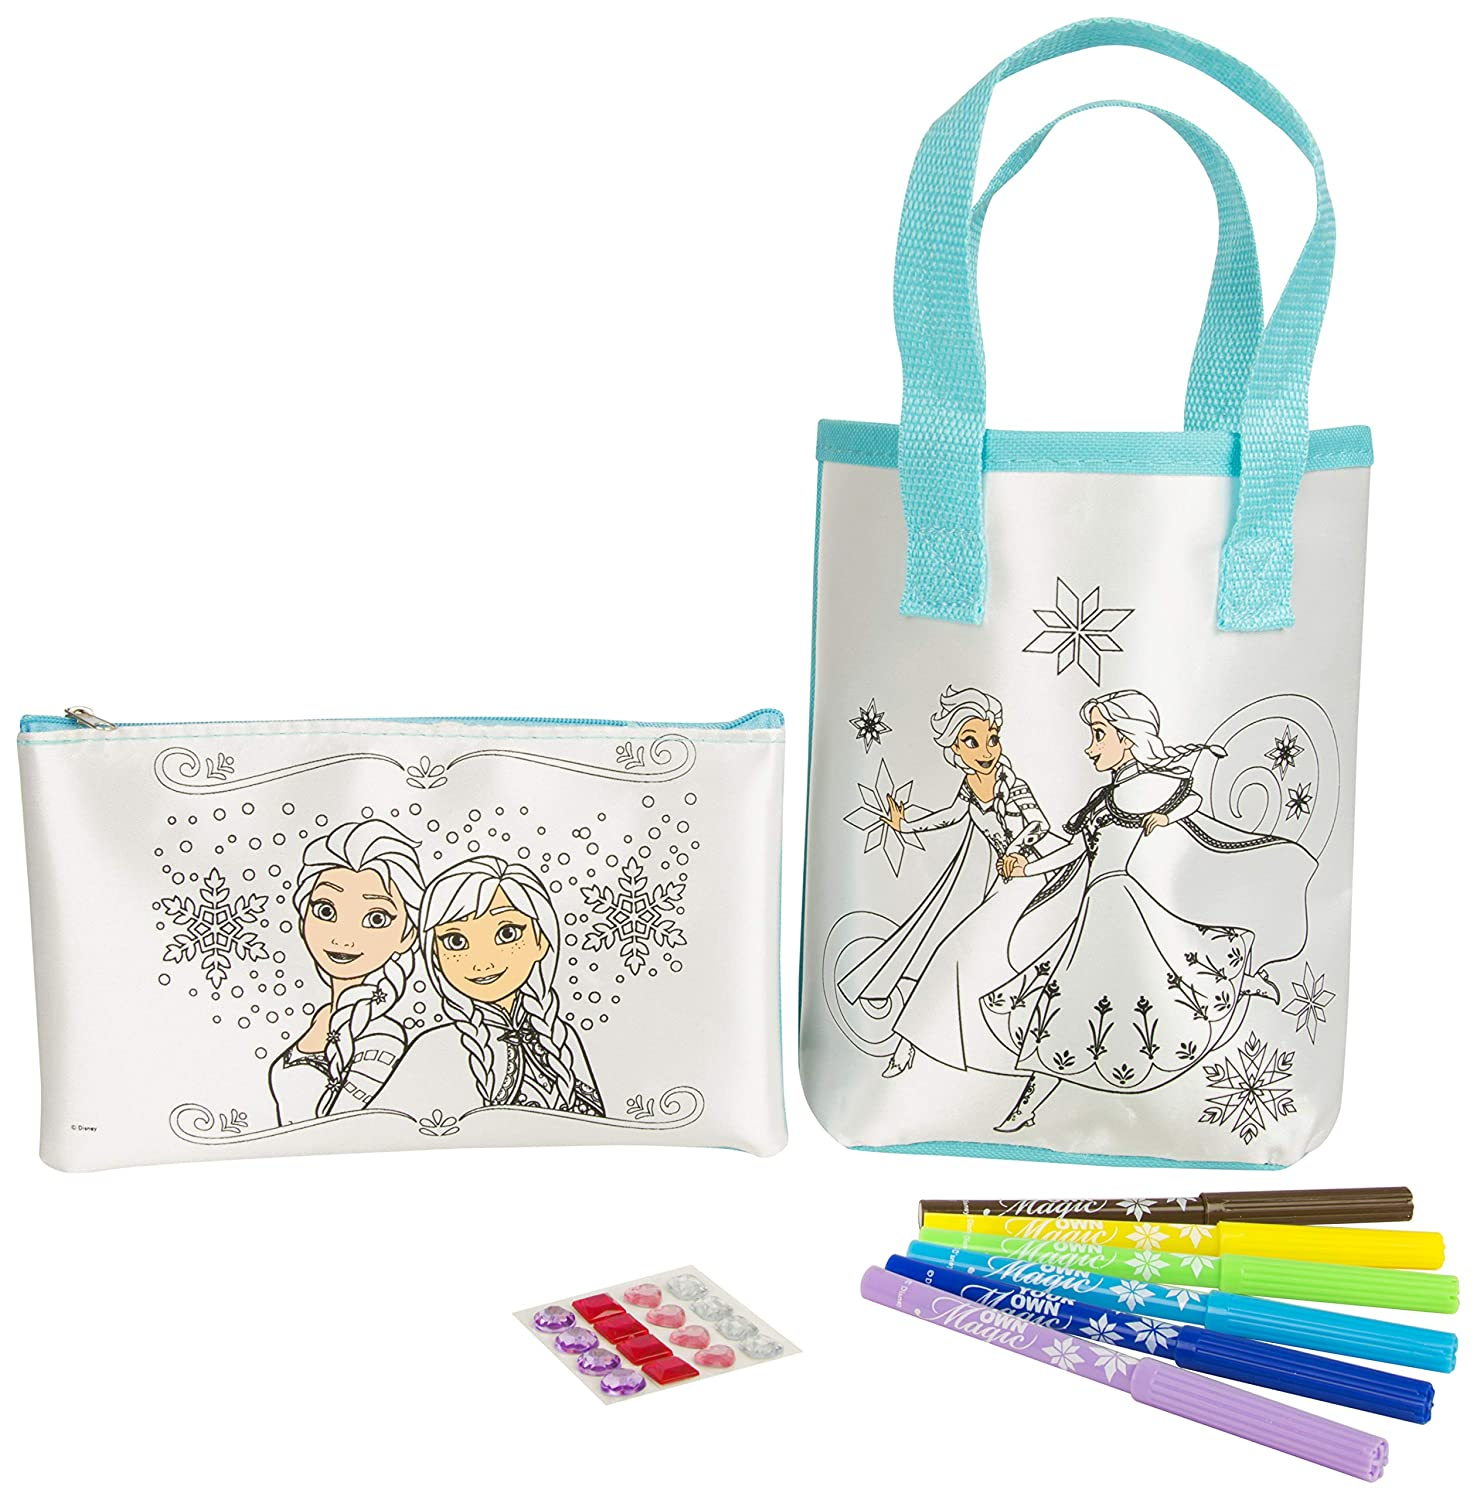 Amazon.com: Disney Frozen DFR8-4581 Colour Your Own Bag and ...